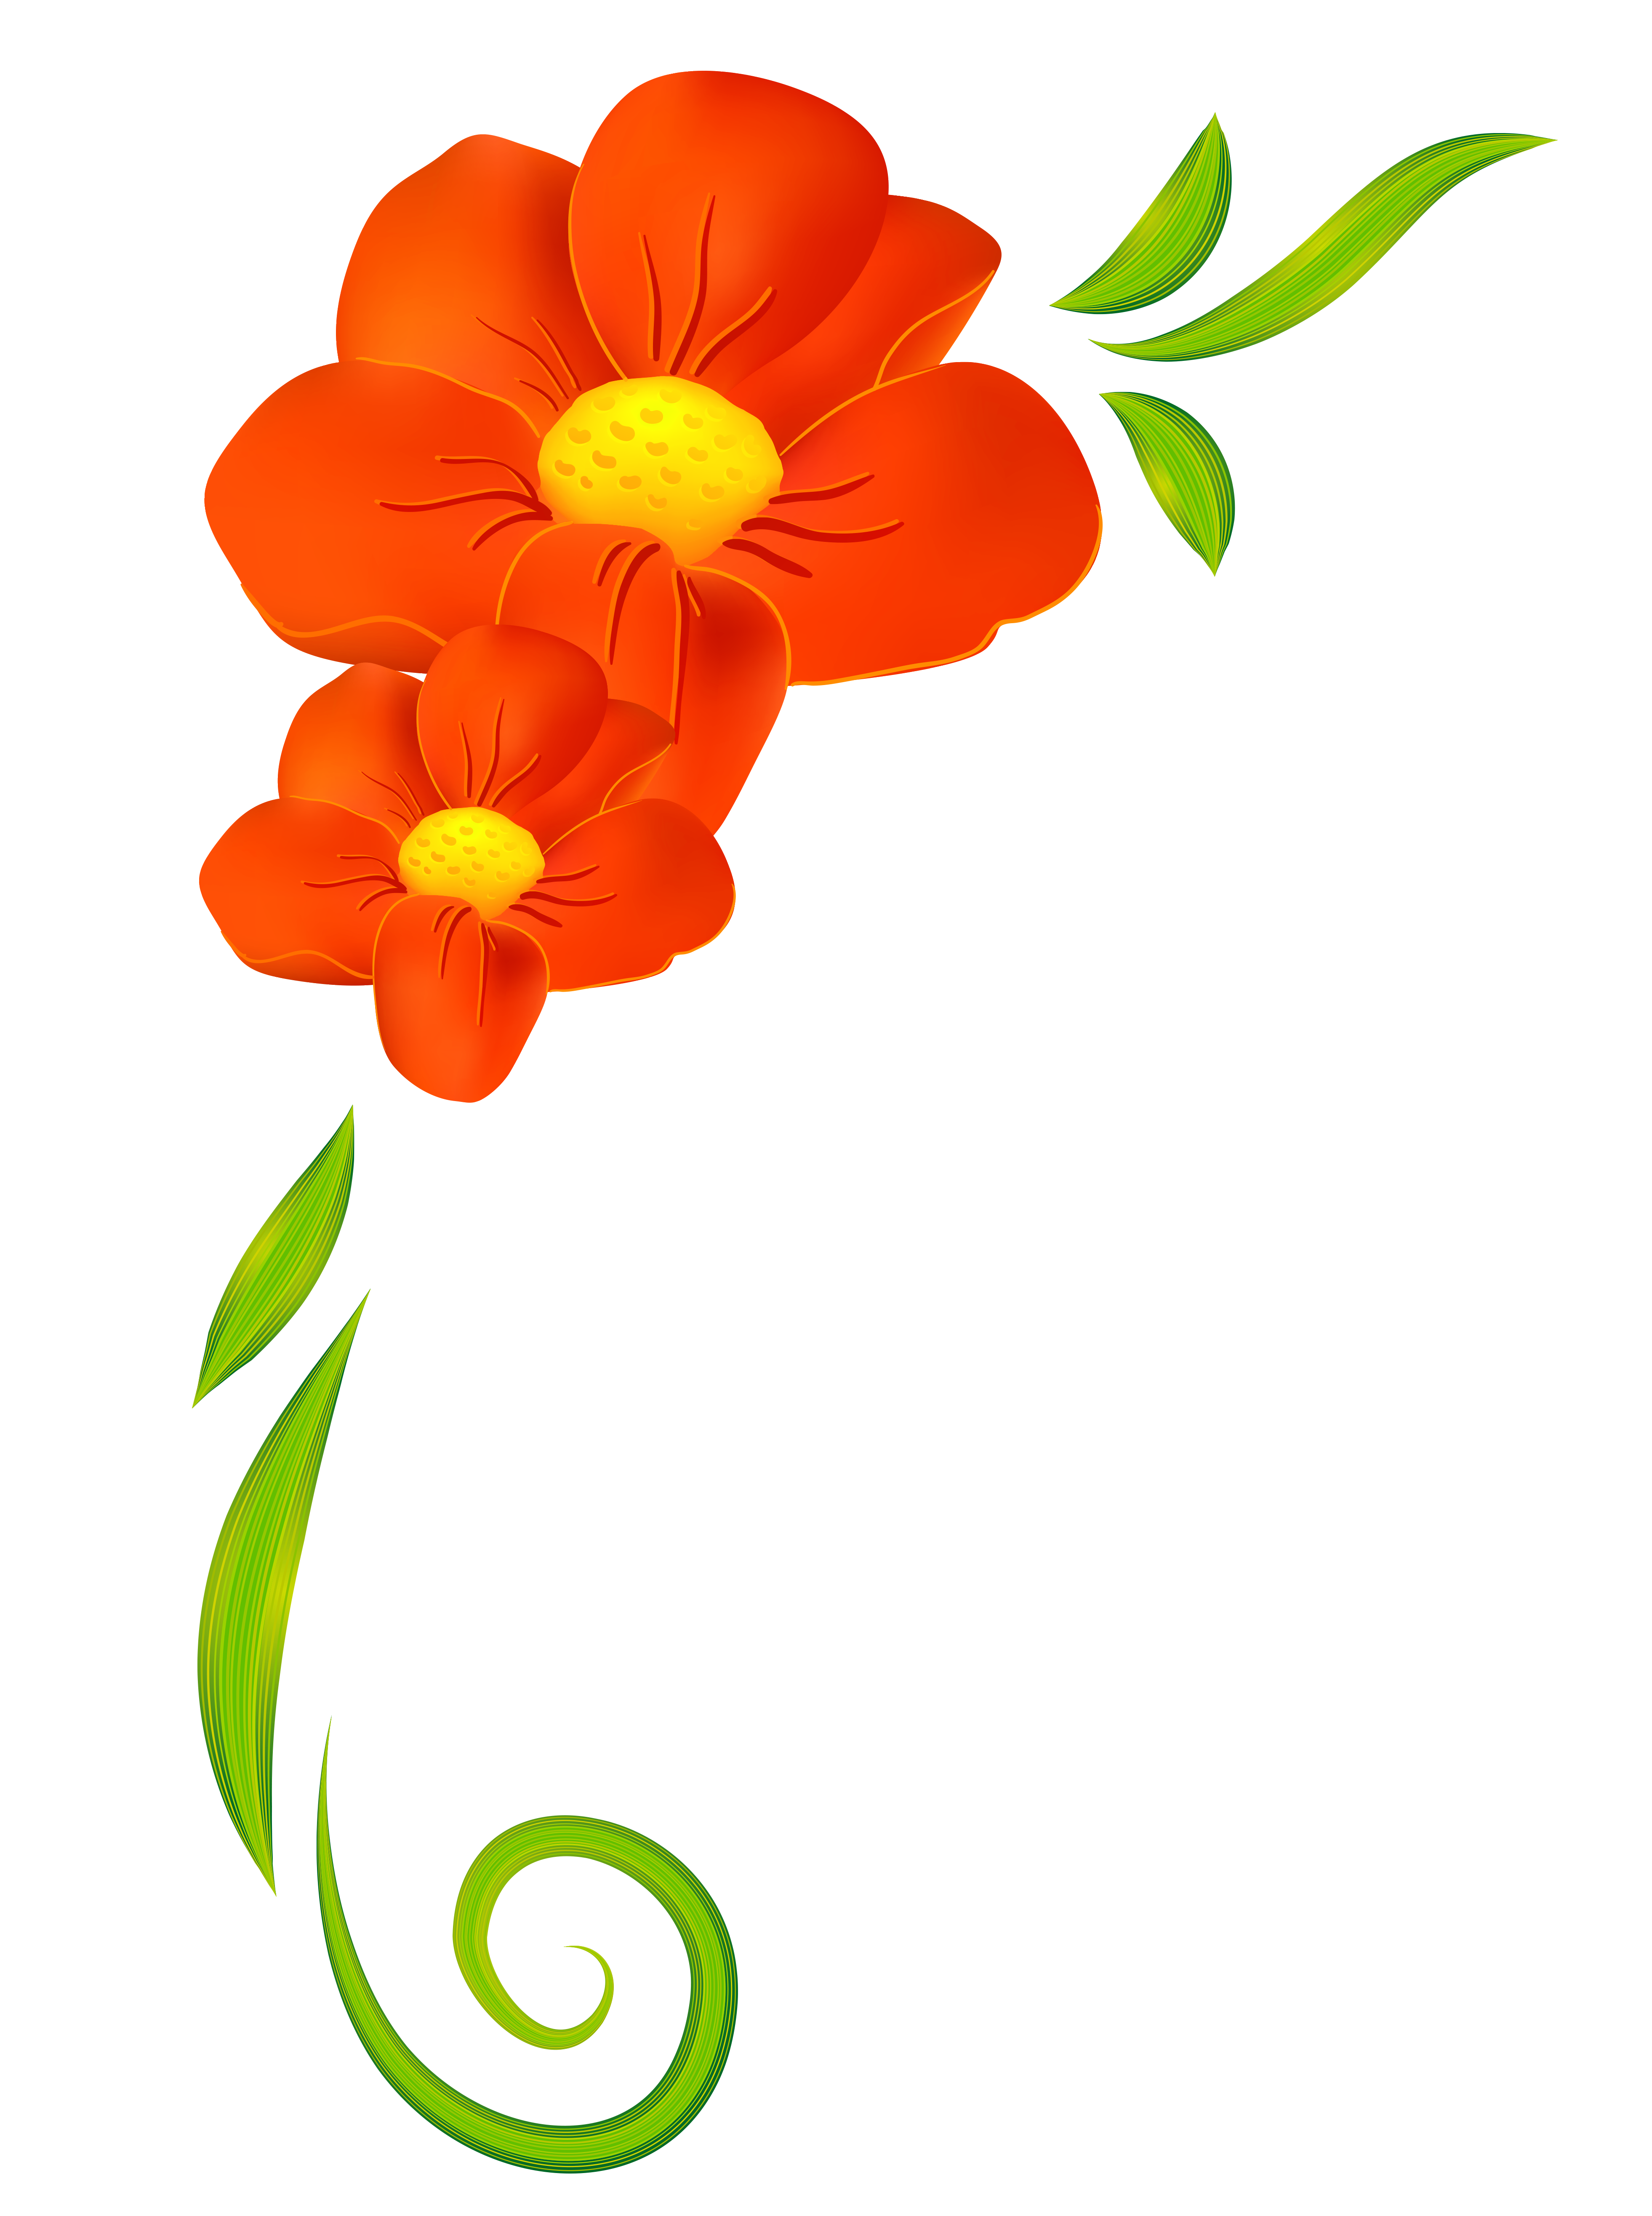 Flower Frame Clipart At Getdrawings Com Free For Personal Use